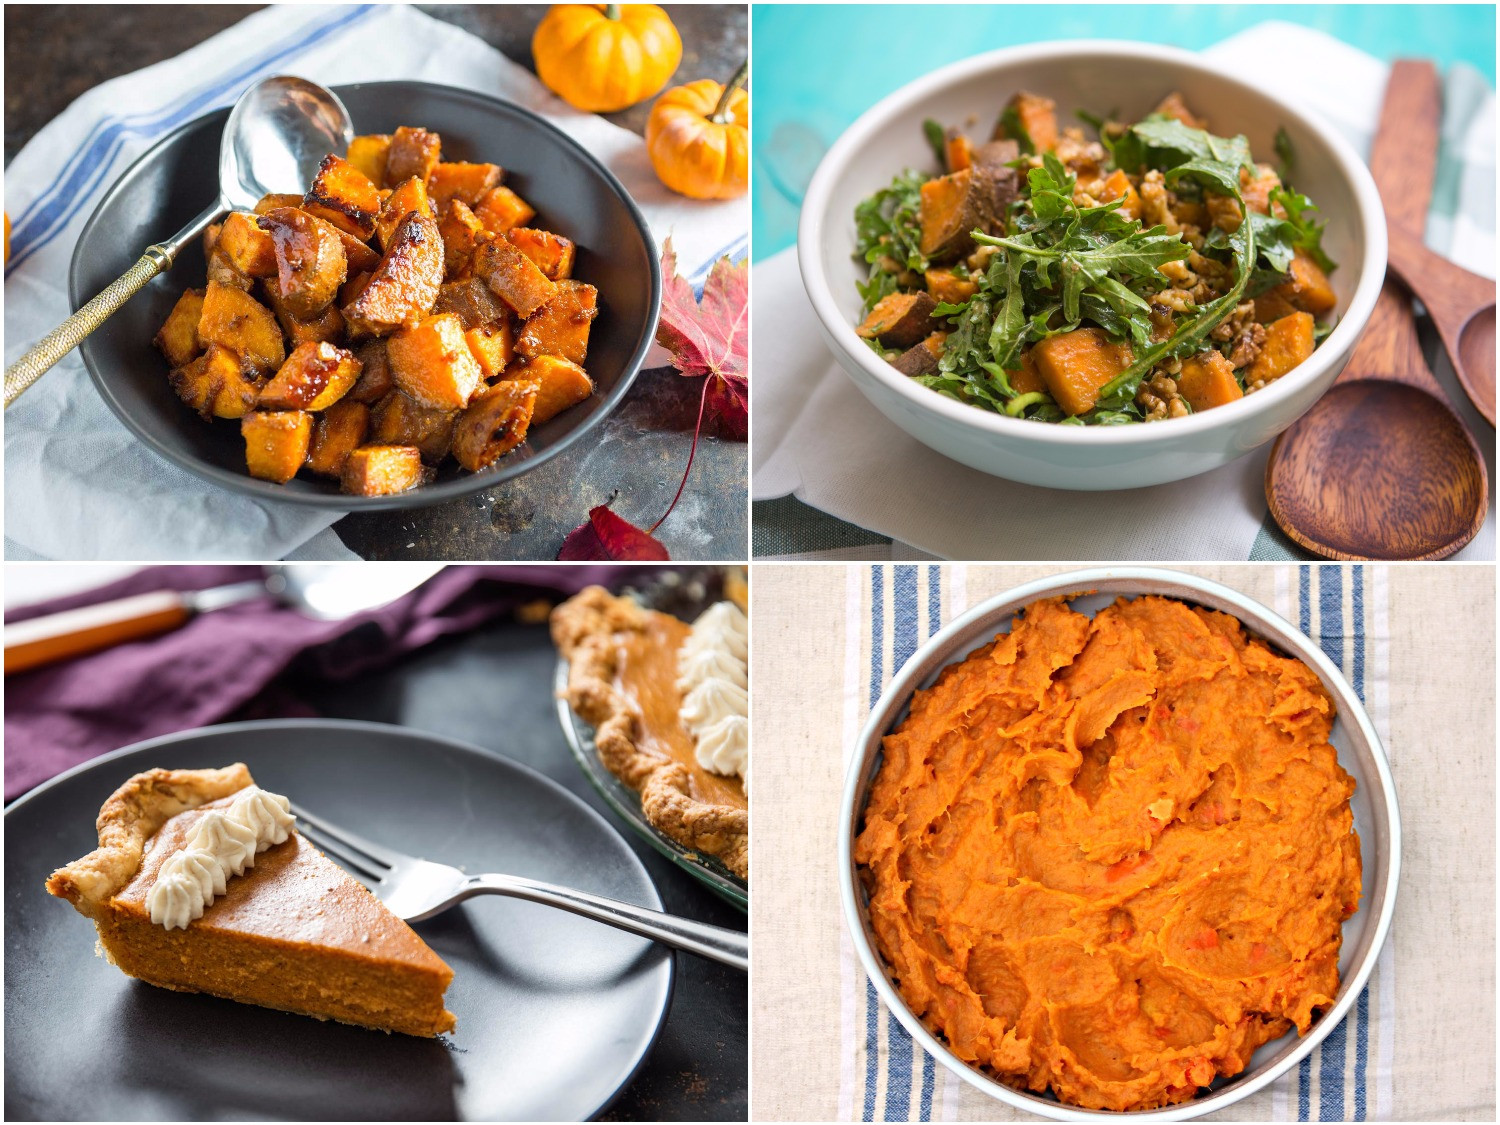 Sweet Potato Thanksgiving  15 Sweet Potato Recipes for Thanksgiving That Are Just